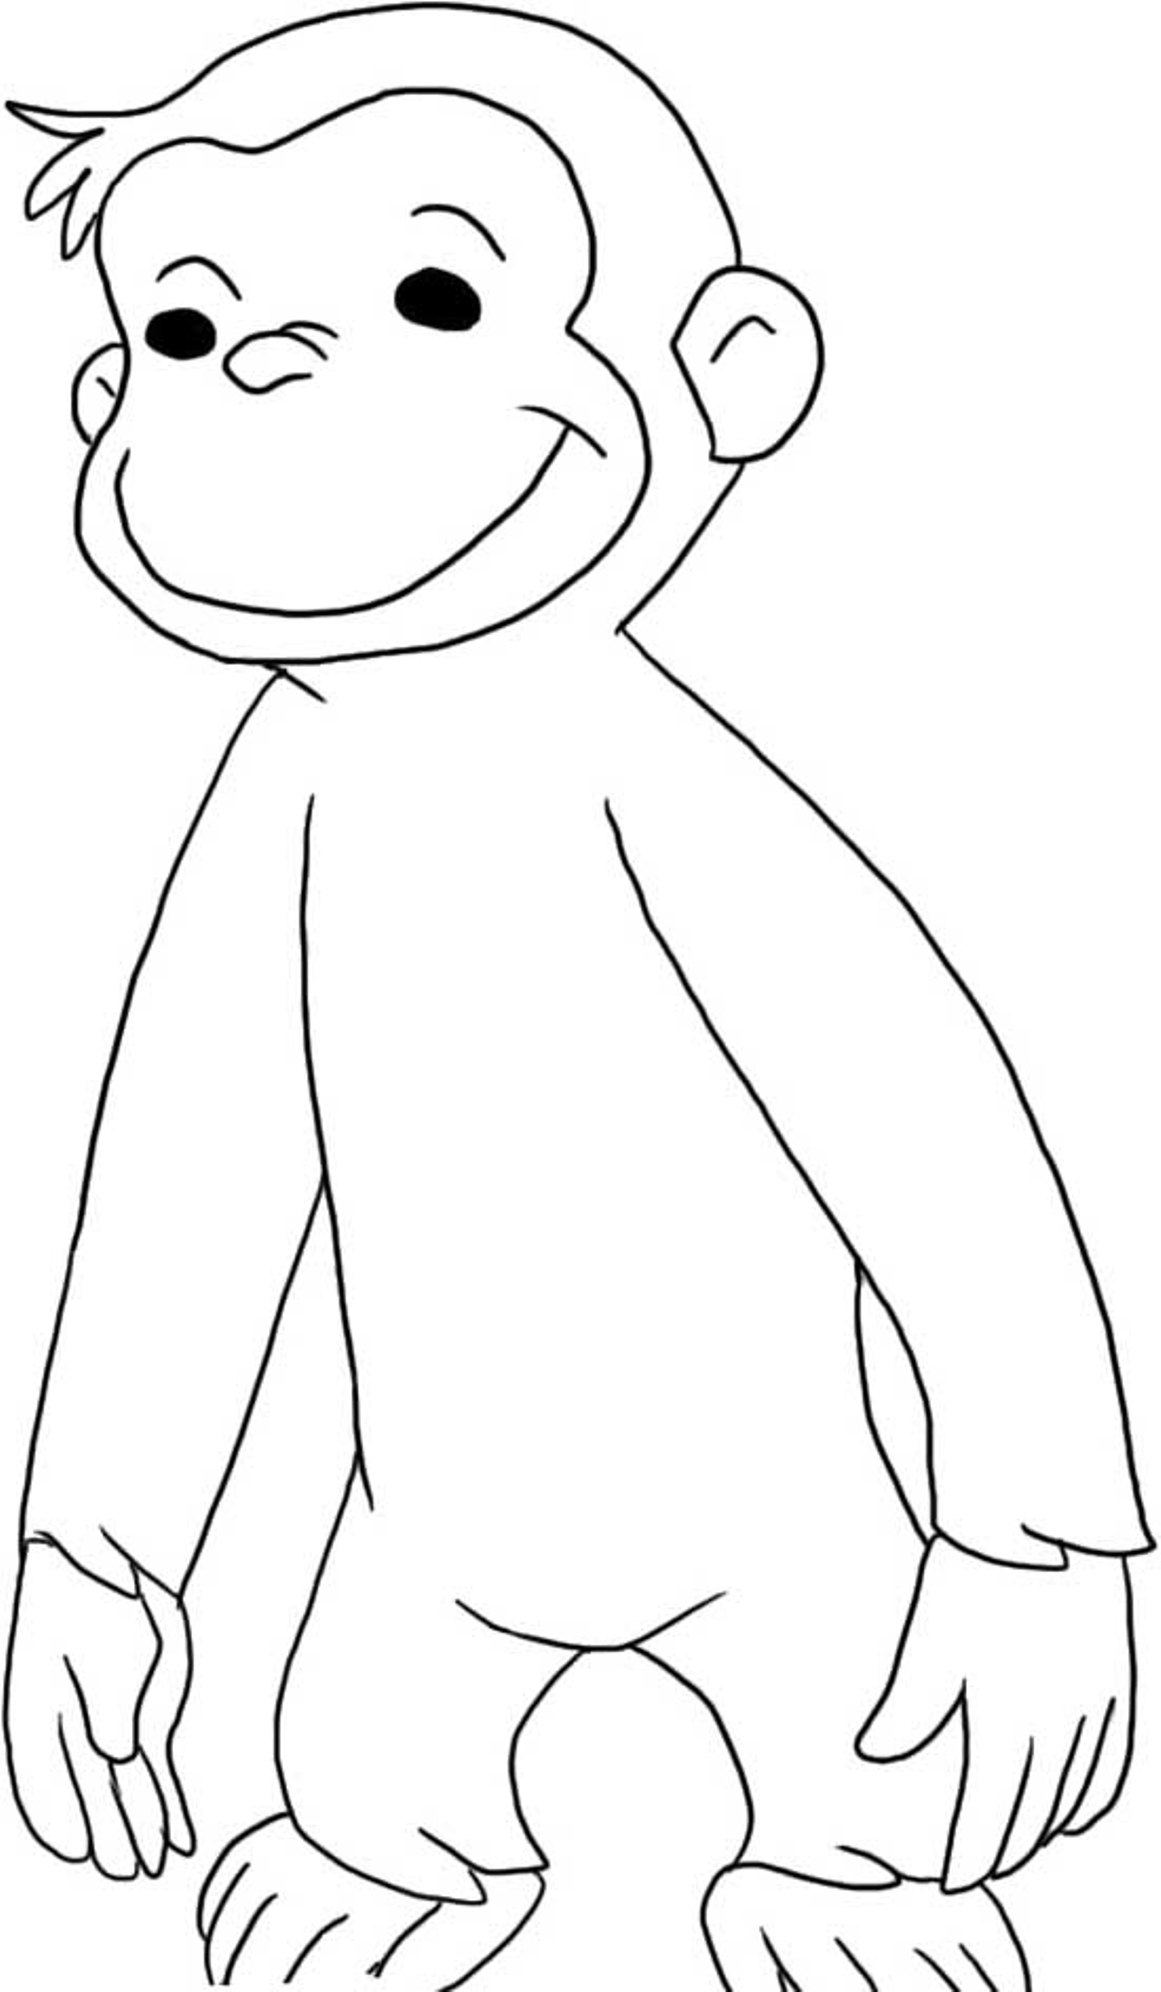 It's just a graphic of Peaceful Curious George Printable Coloring Pages